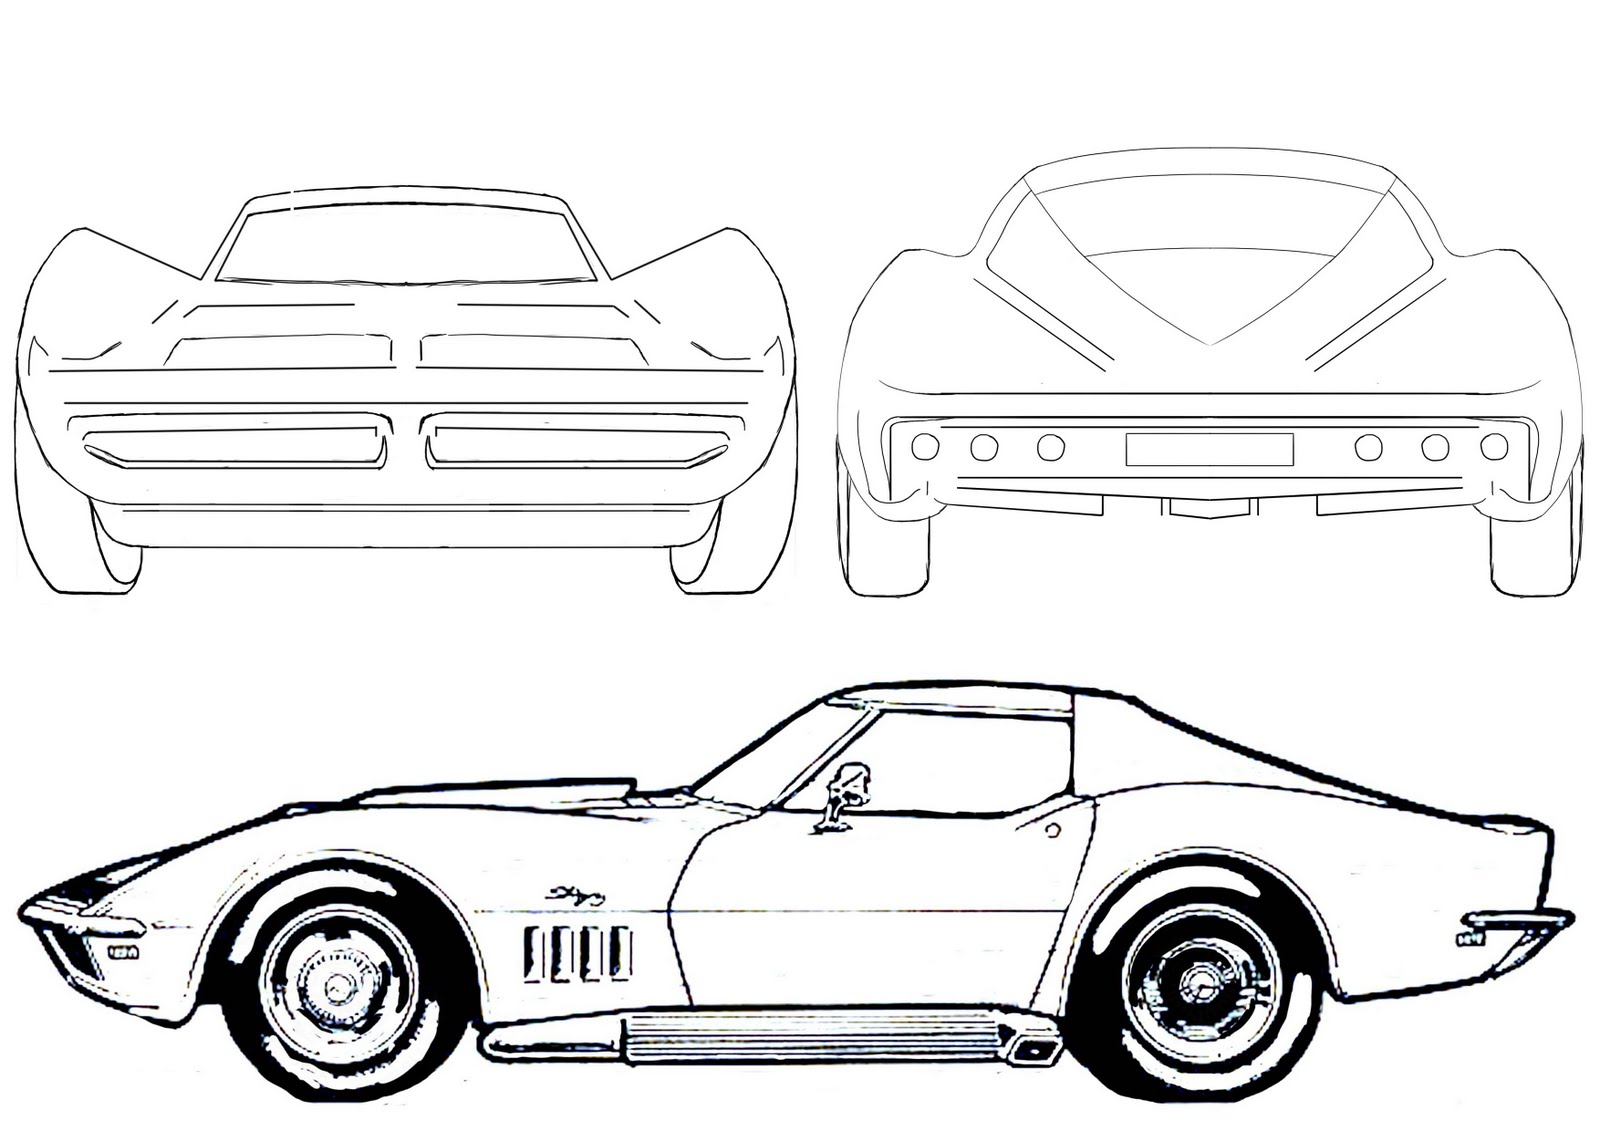 Drawn ferarri cartoon Search outline car Search outline